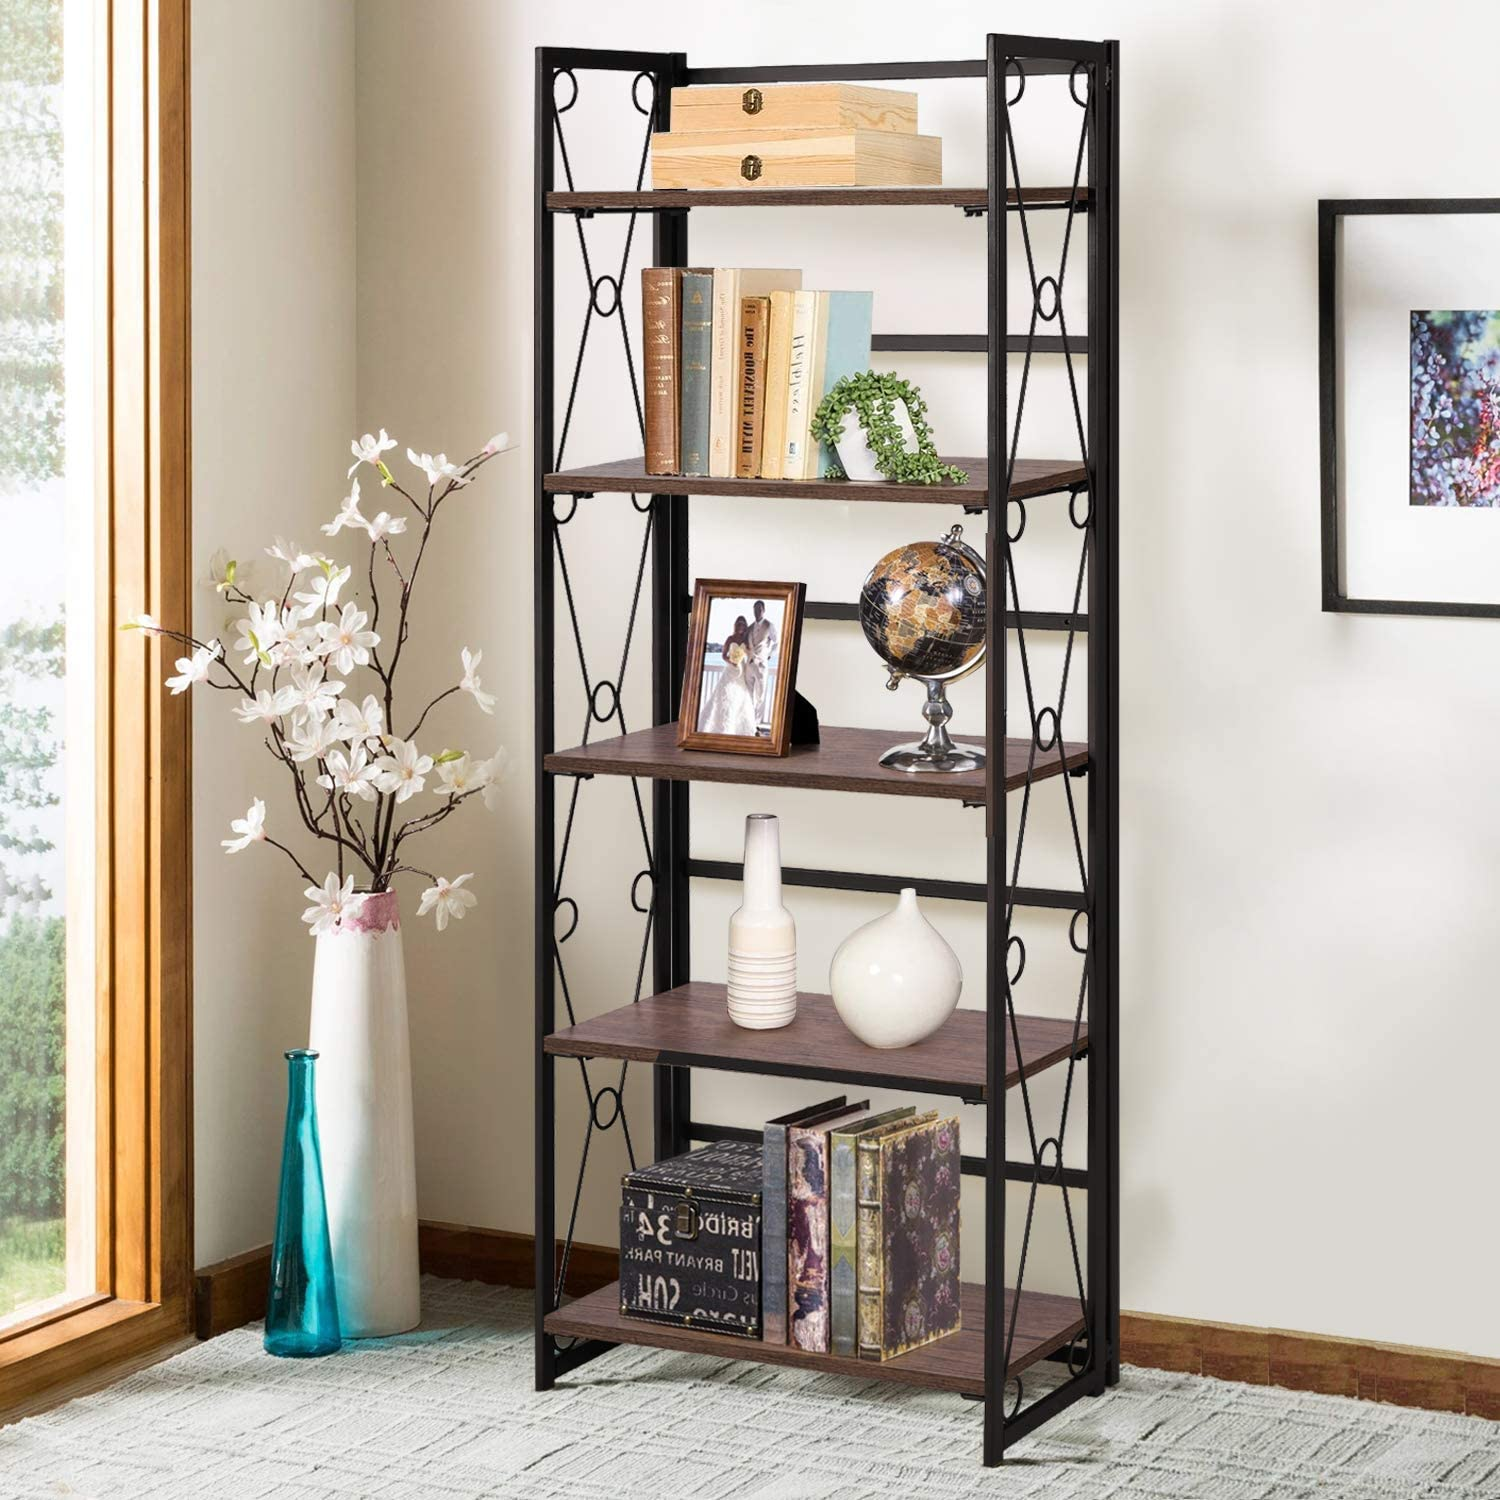 VECELO 5 Tier Bookshelf, Industrial Tall Bookcase with Metal Frames,Modern Standing Storage Rack Shelf Organizer for Home and Office,Dark Brown